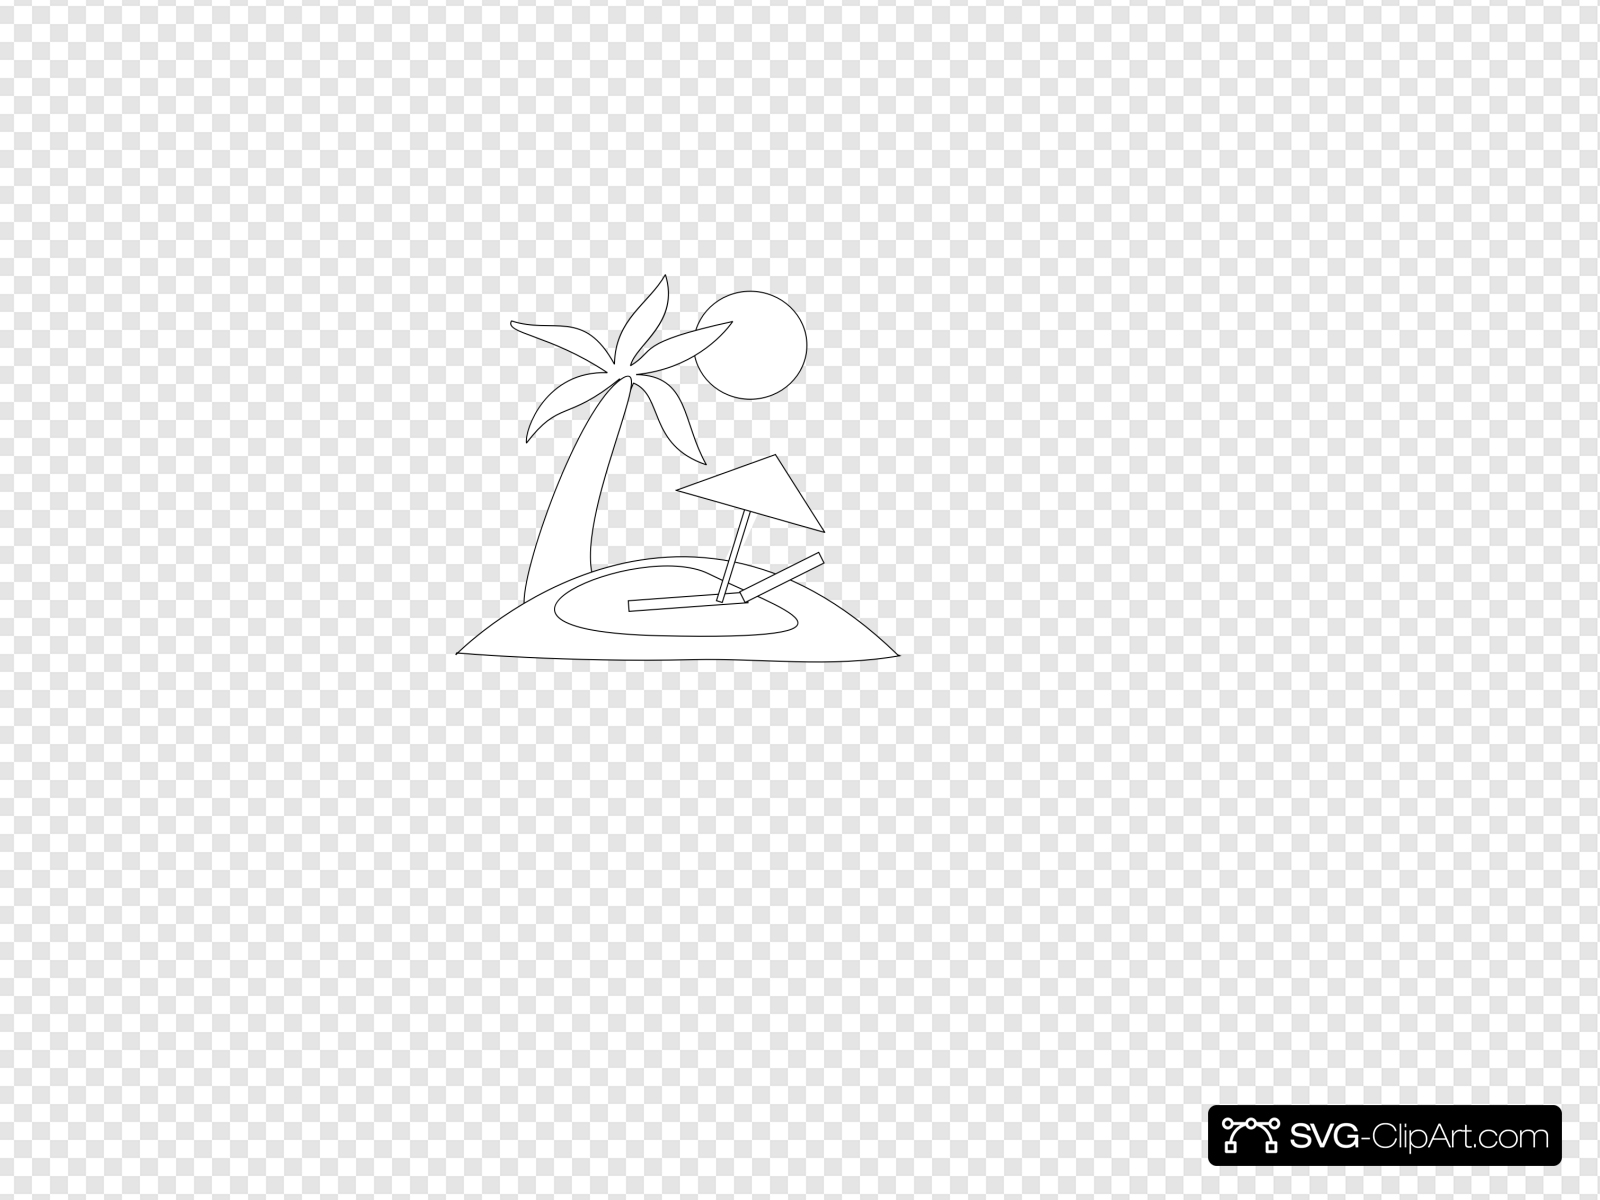 Island Outline Clip art, Icon and SVG.